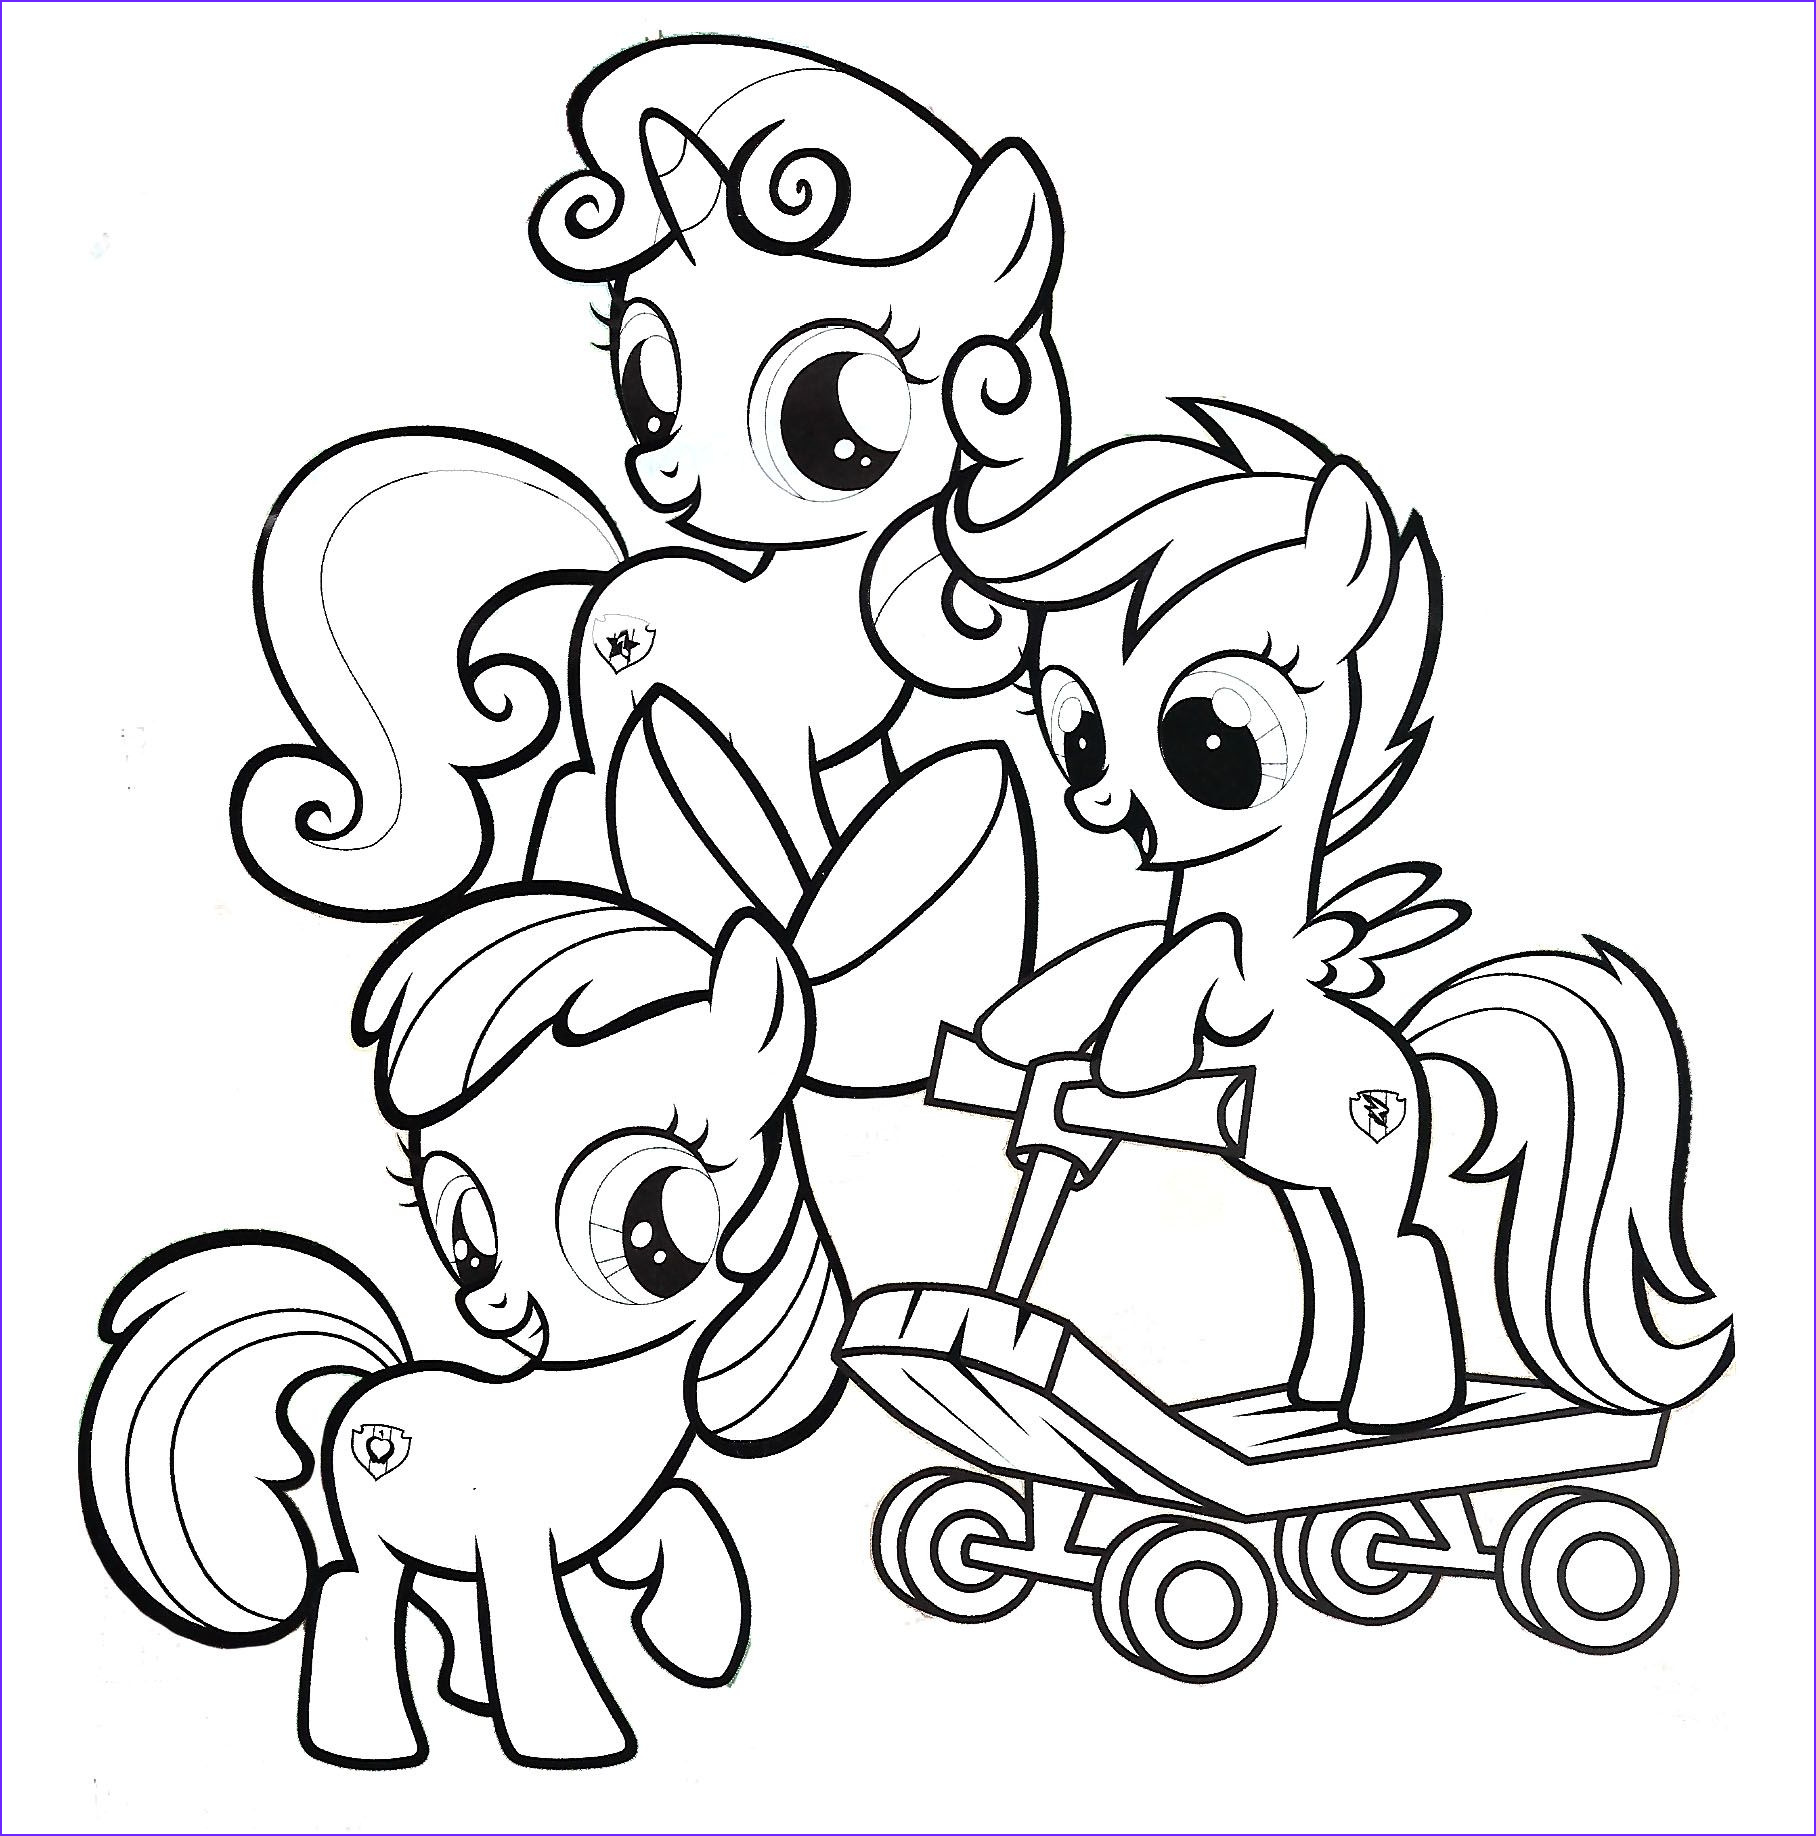 My Little Pony Coloring Pages to Print Cool Gallery Cutie Mark Crusaders My Little Pony Coloring Page